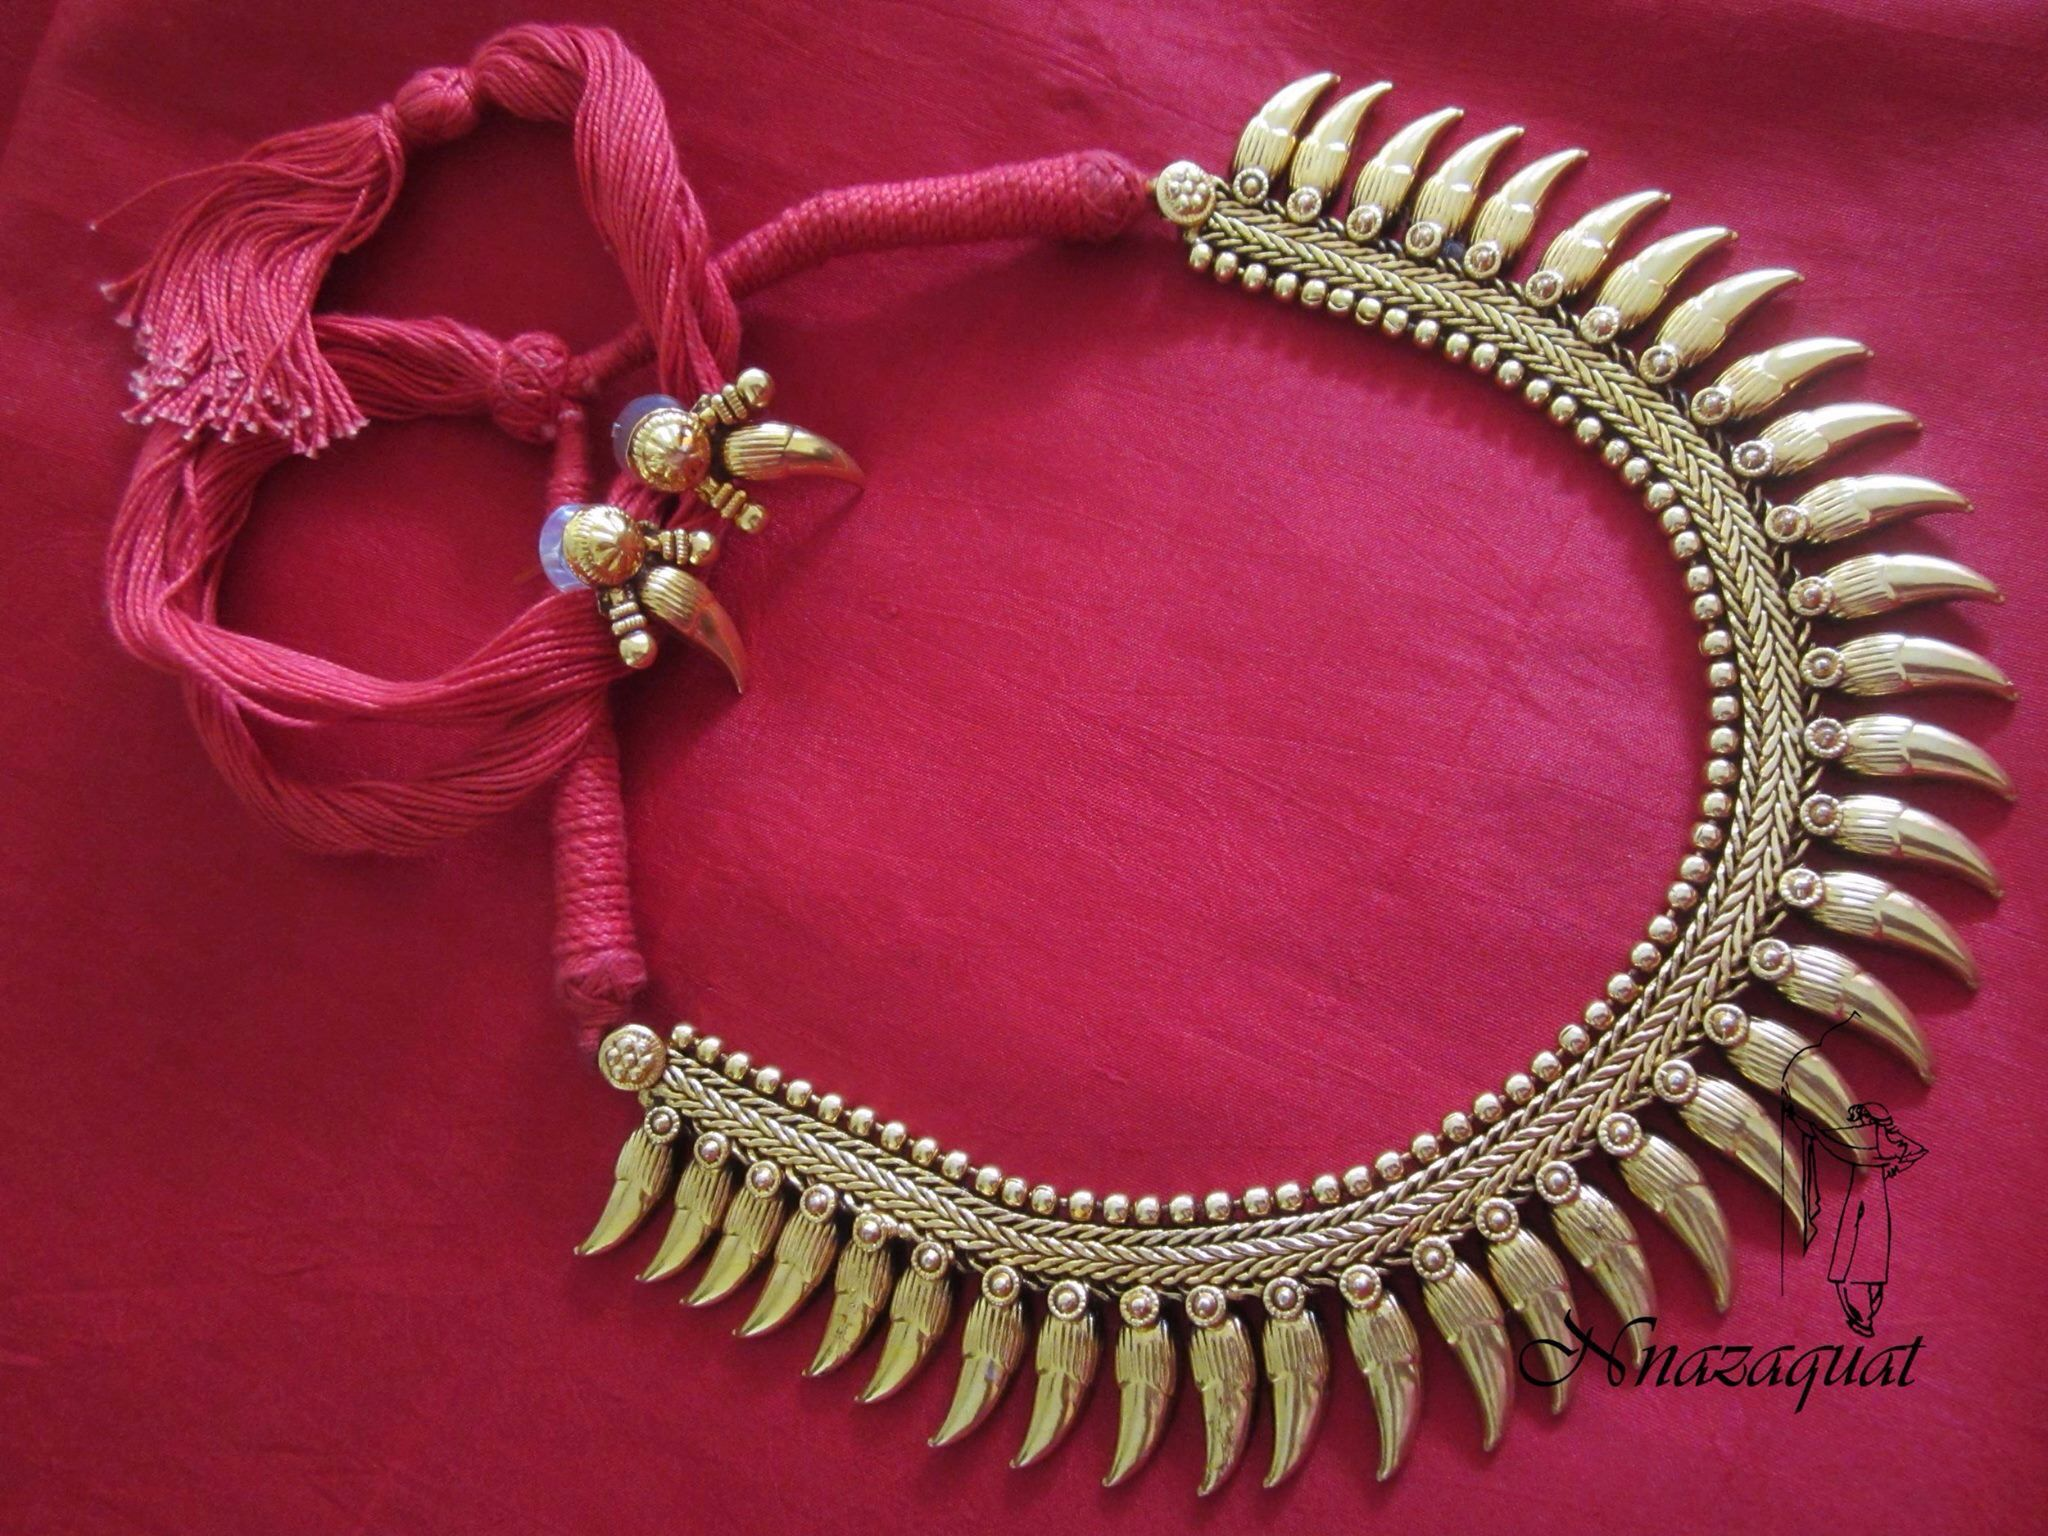 hand crafted necklace designed by Nnazaquat.